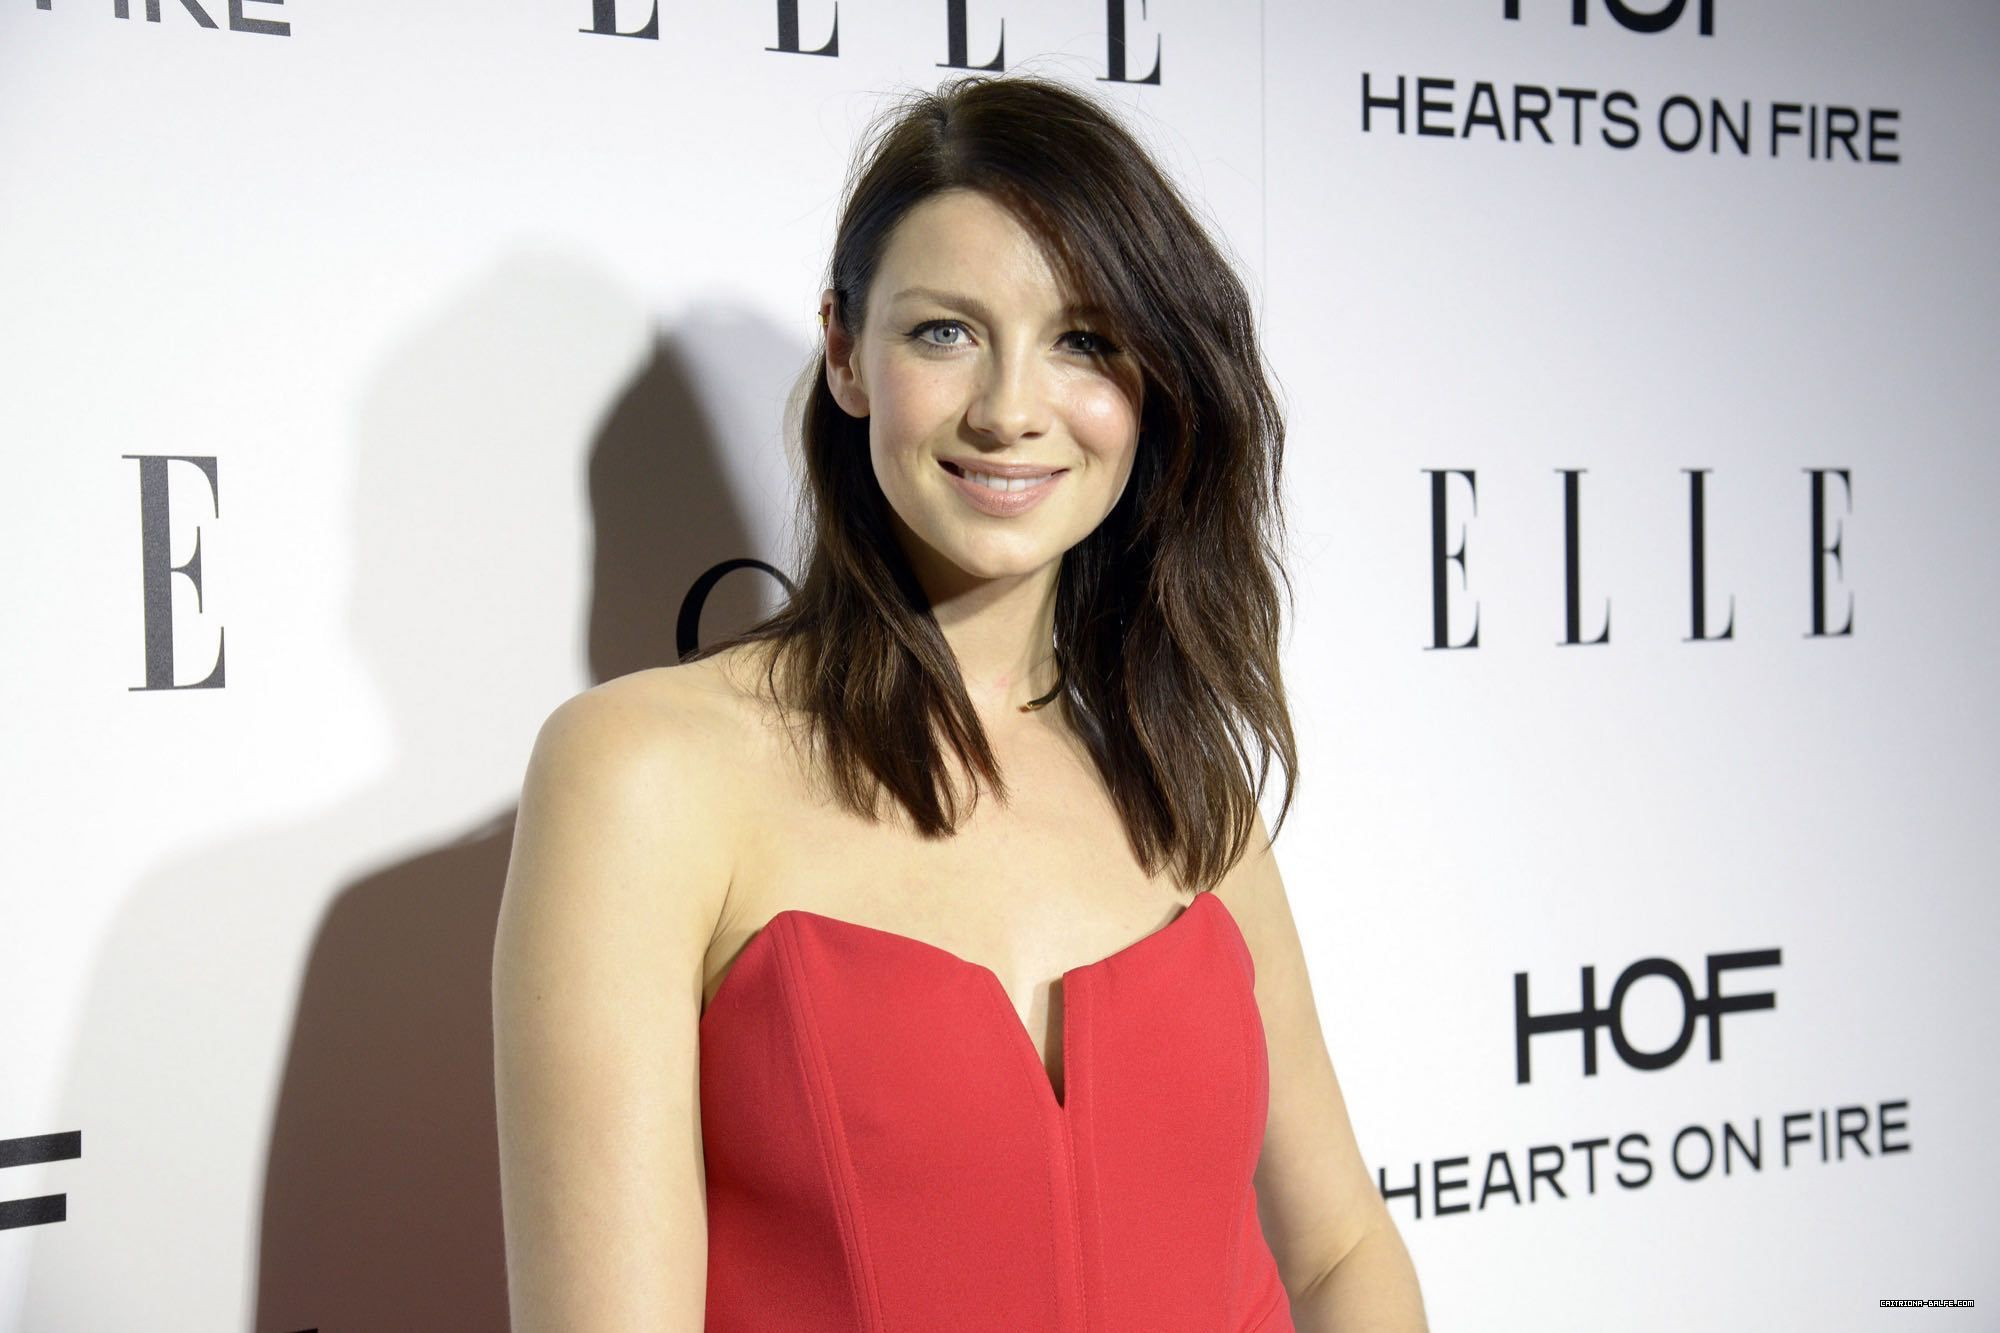 caitriona balfe at a ELLE show  wearing a red dress